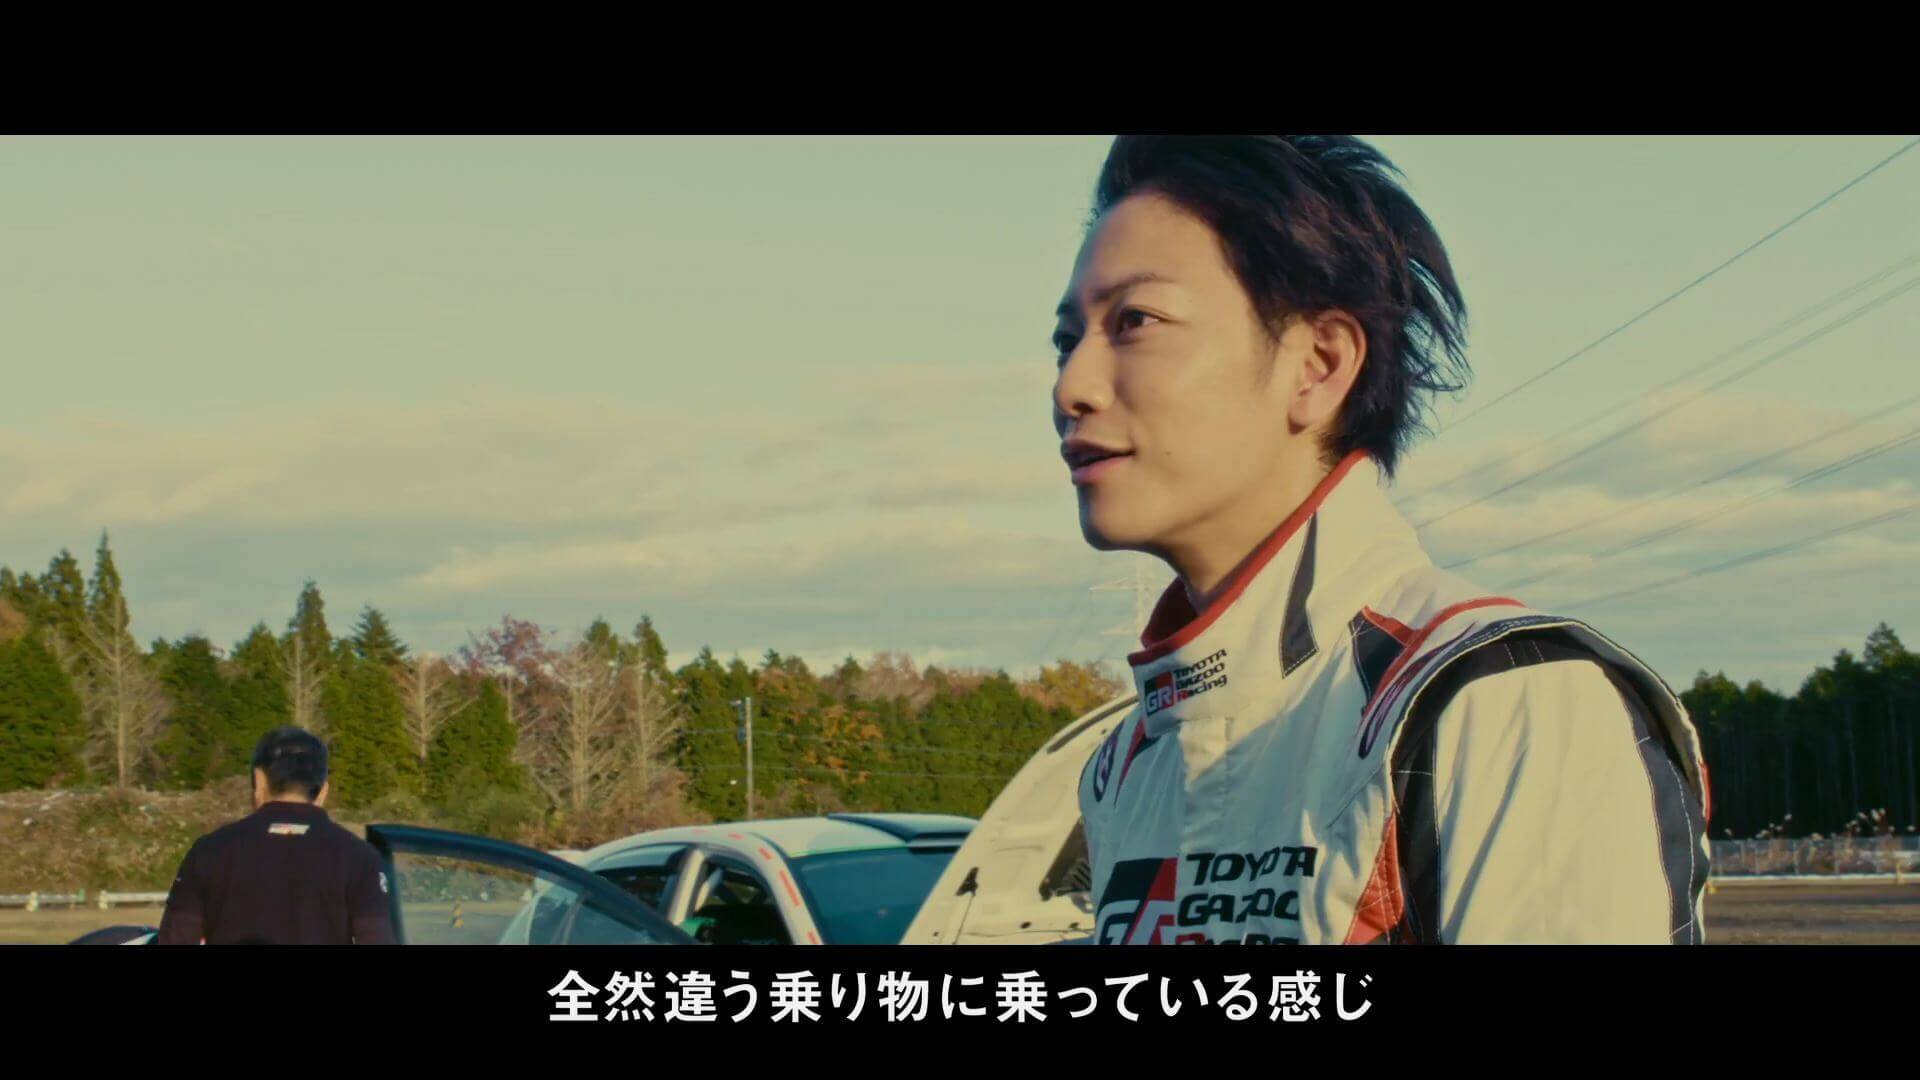 TOYOTA GAZOO Racing TAKERU SATOH MEETS GAZOO MORIZO mp4 20170712 101706 908